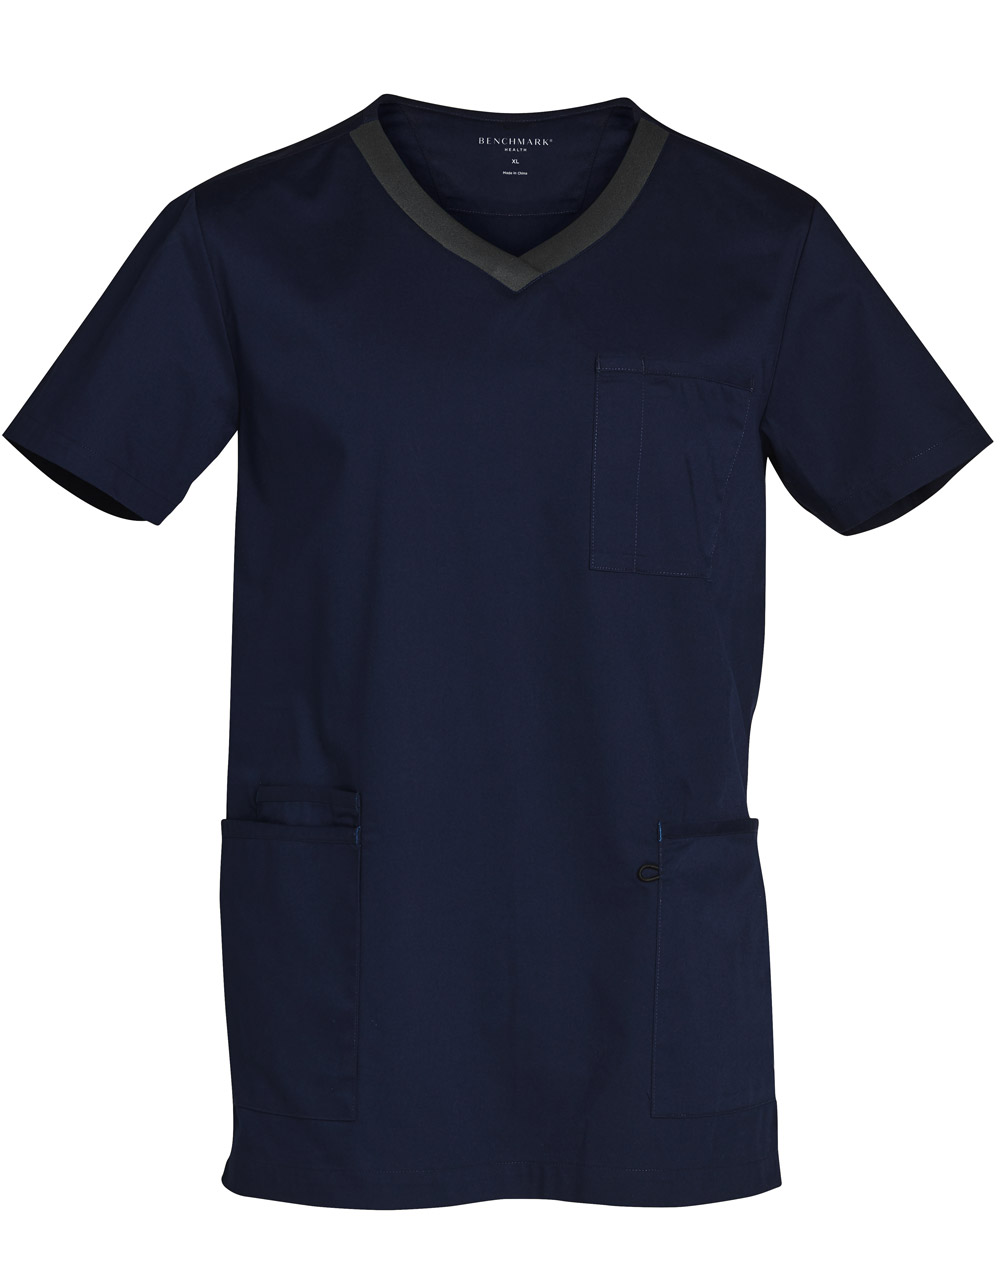 Order Online Navy-Charcoal Mens v-Neck Contrast Trim Scrub Tops in Perth